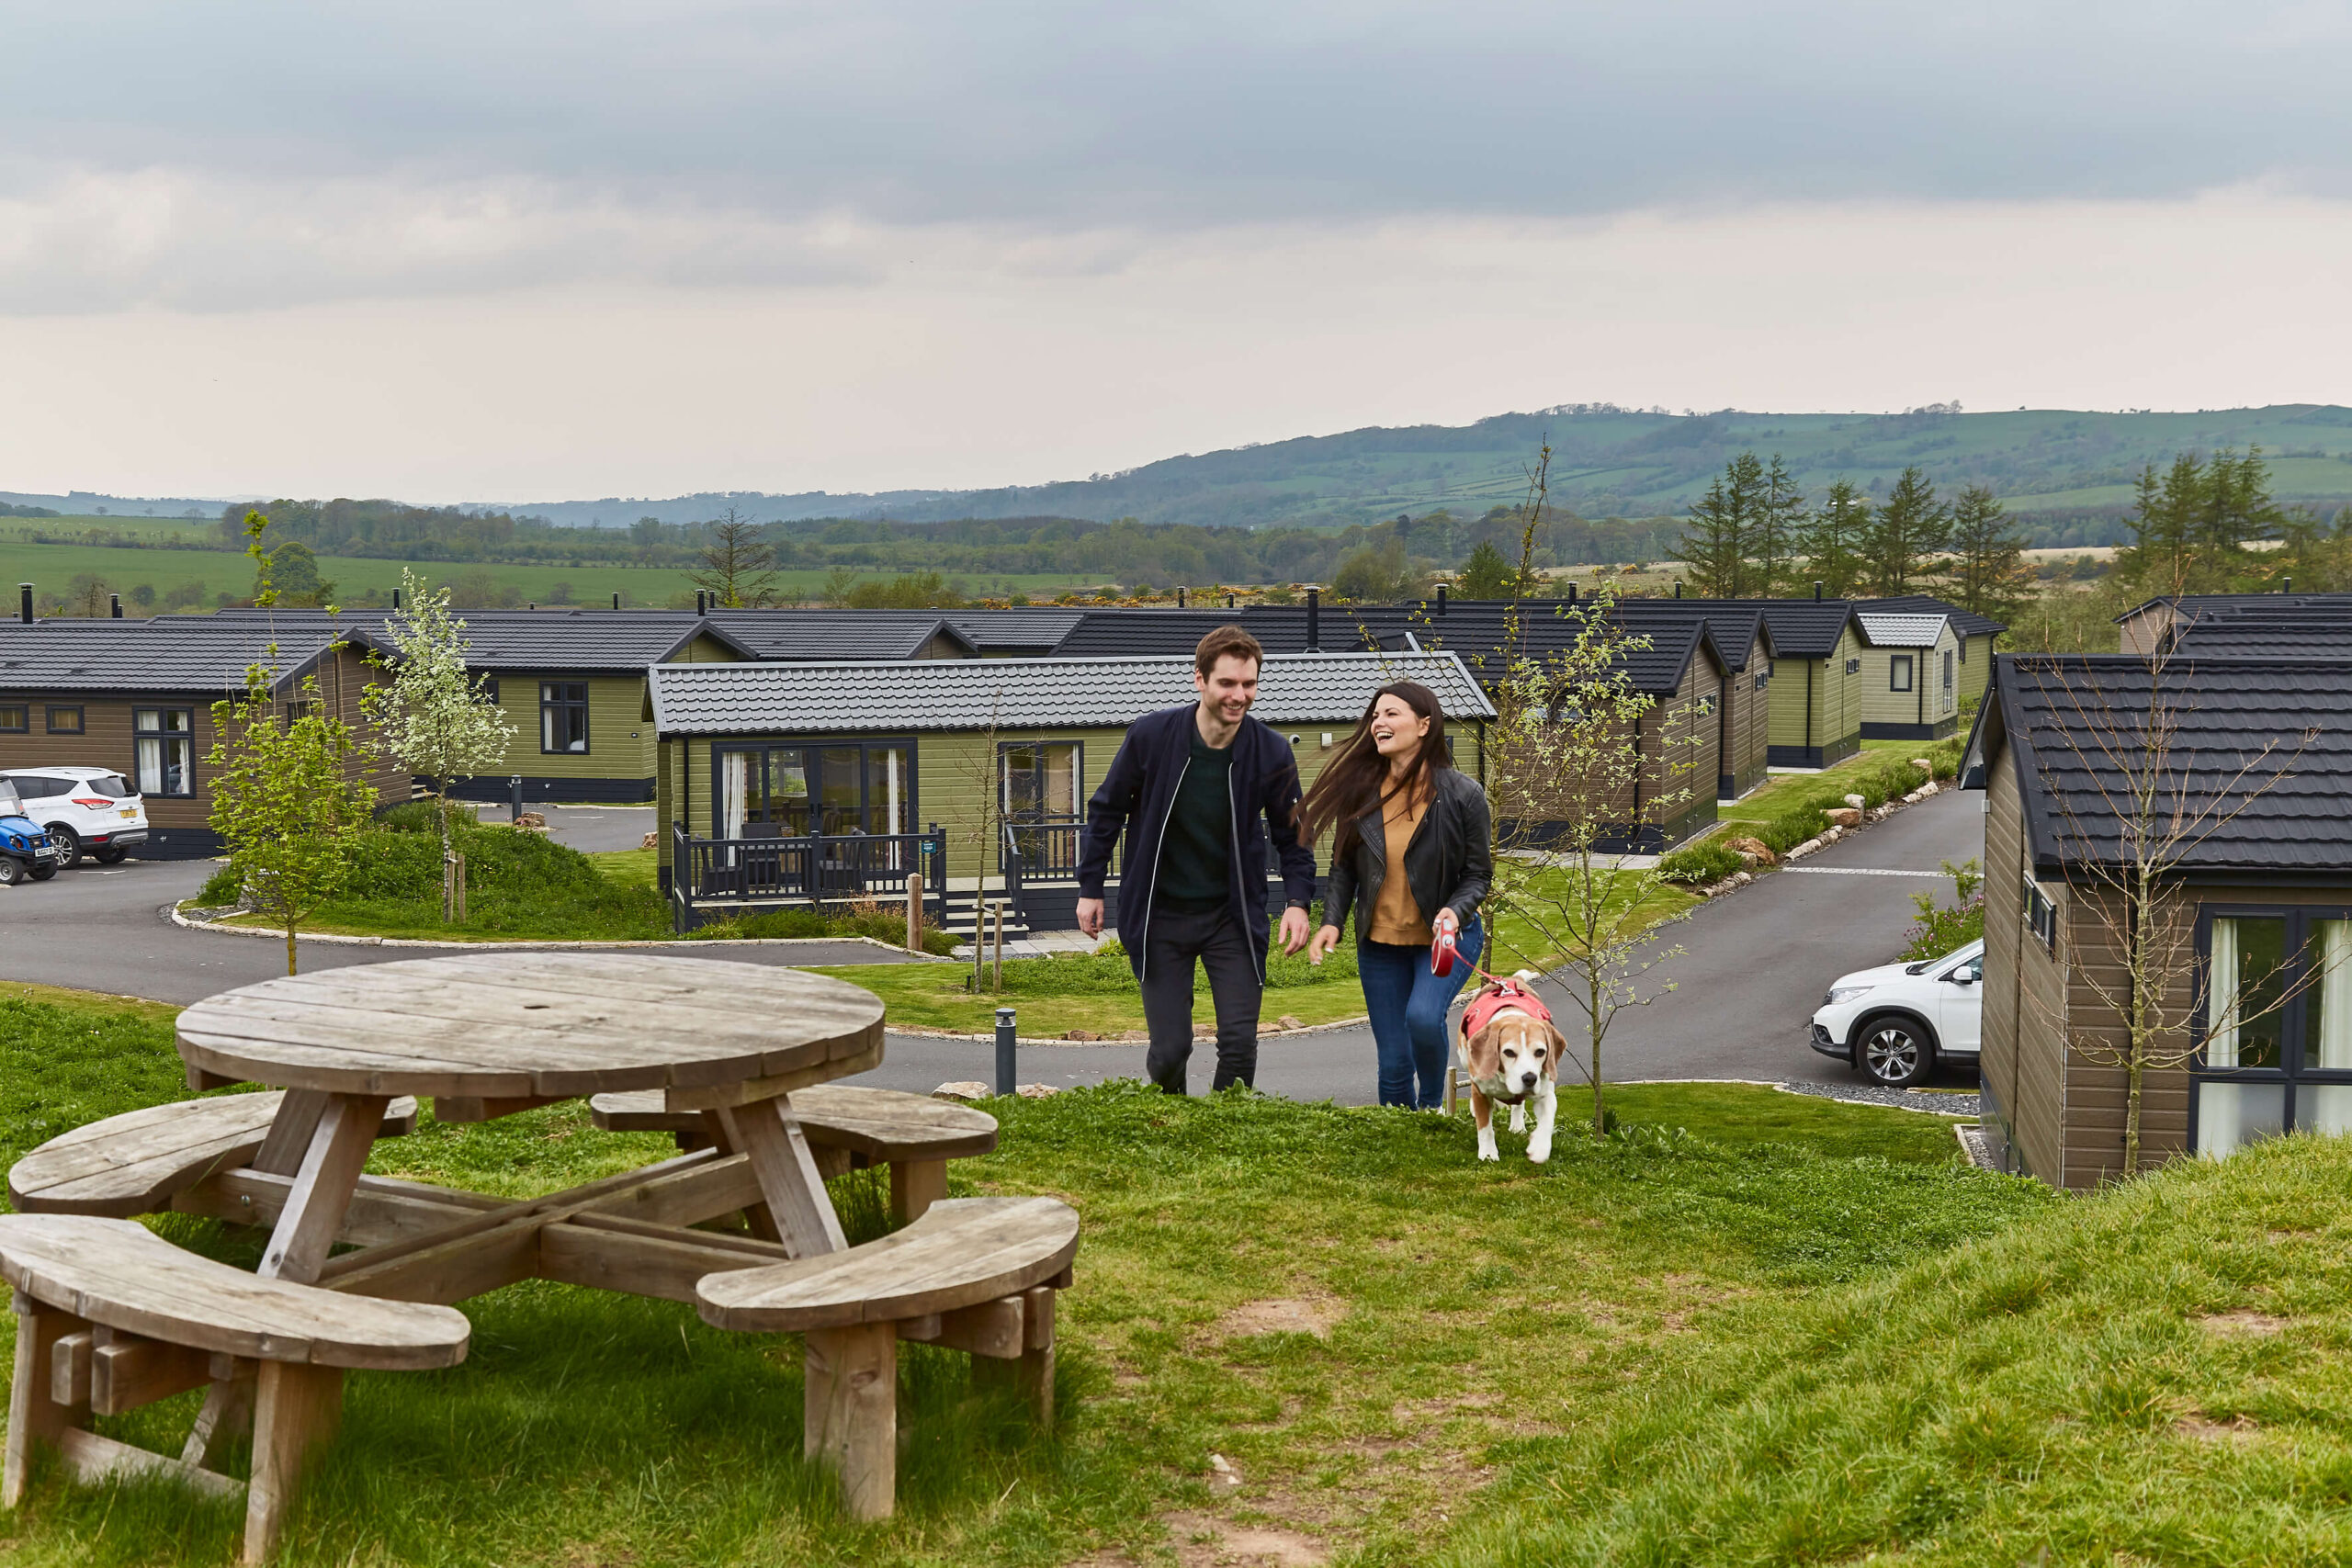 man and woman with dog walking up a hill with the resort and lodges in the back ground and a table in the front